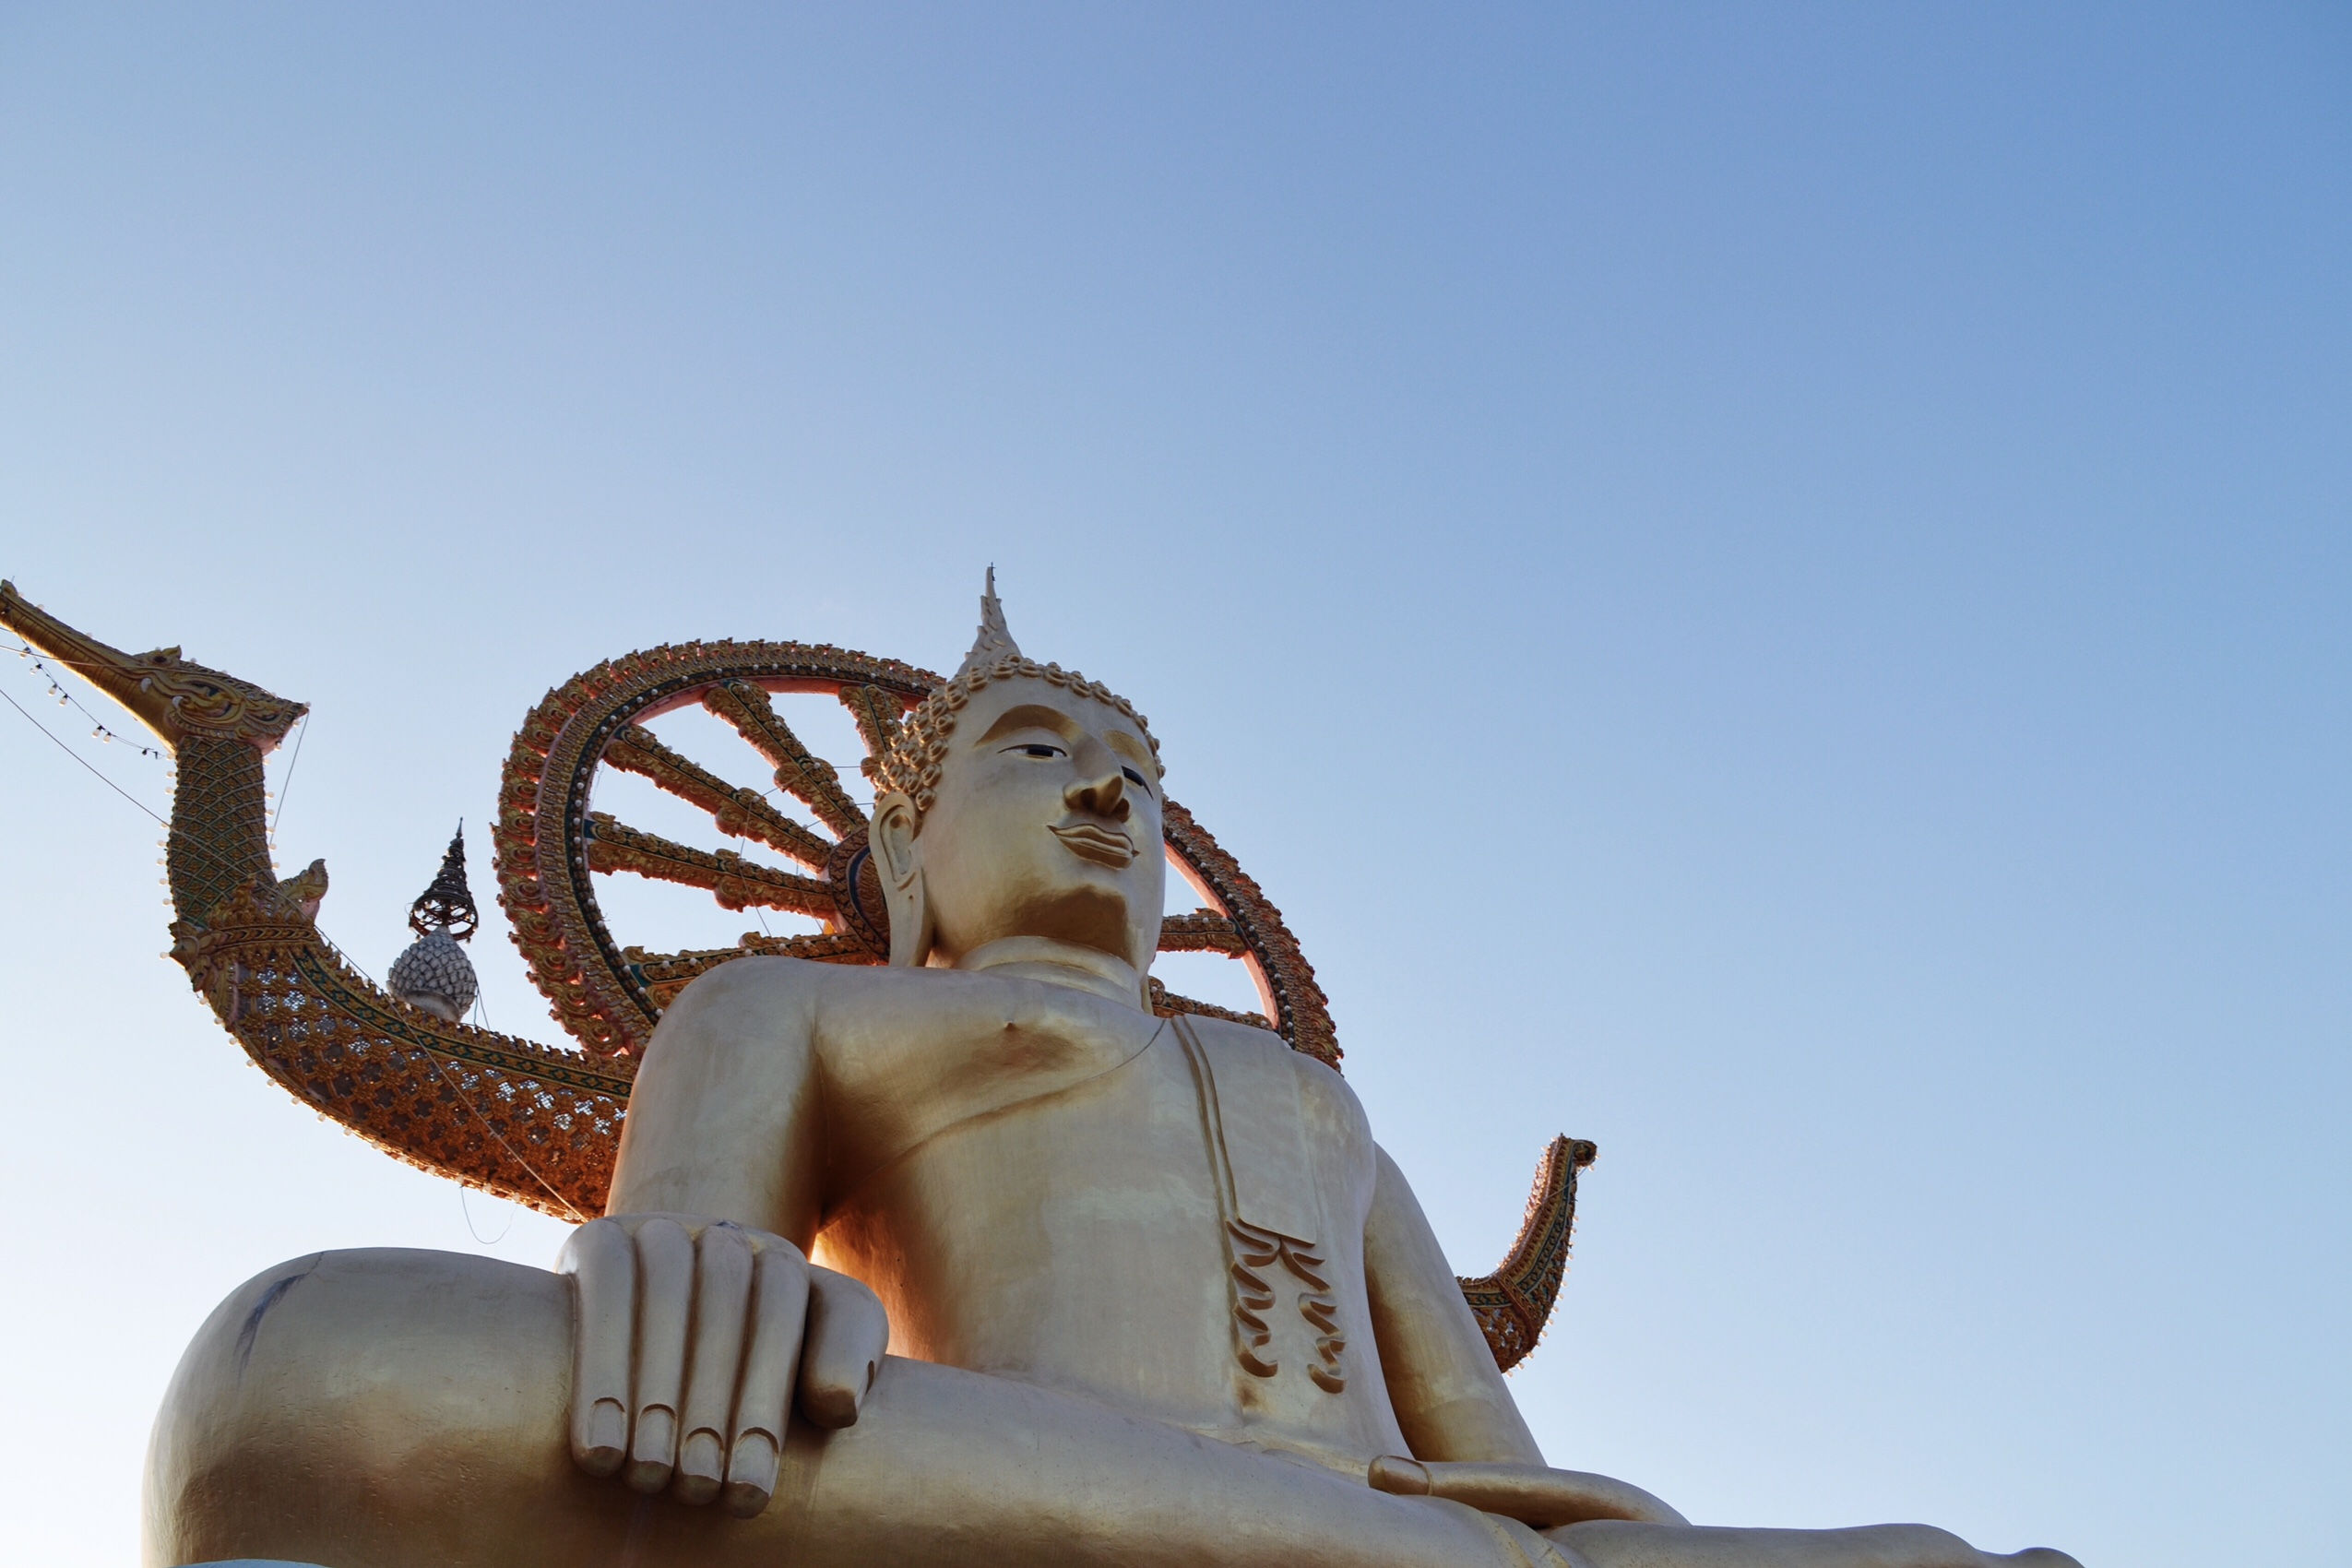 Image of Budda on Koh Samui in Thailand